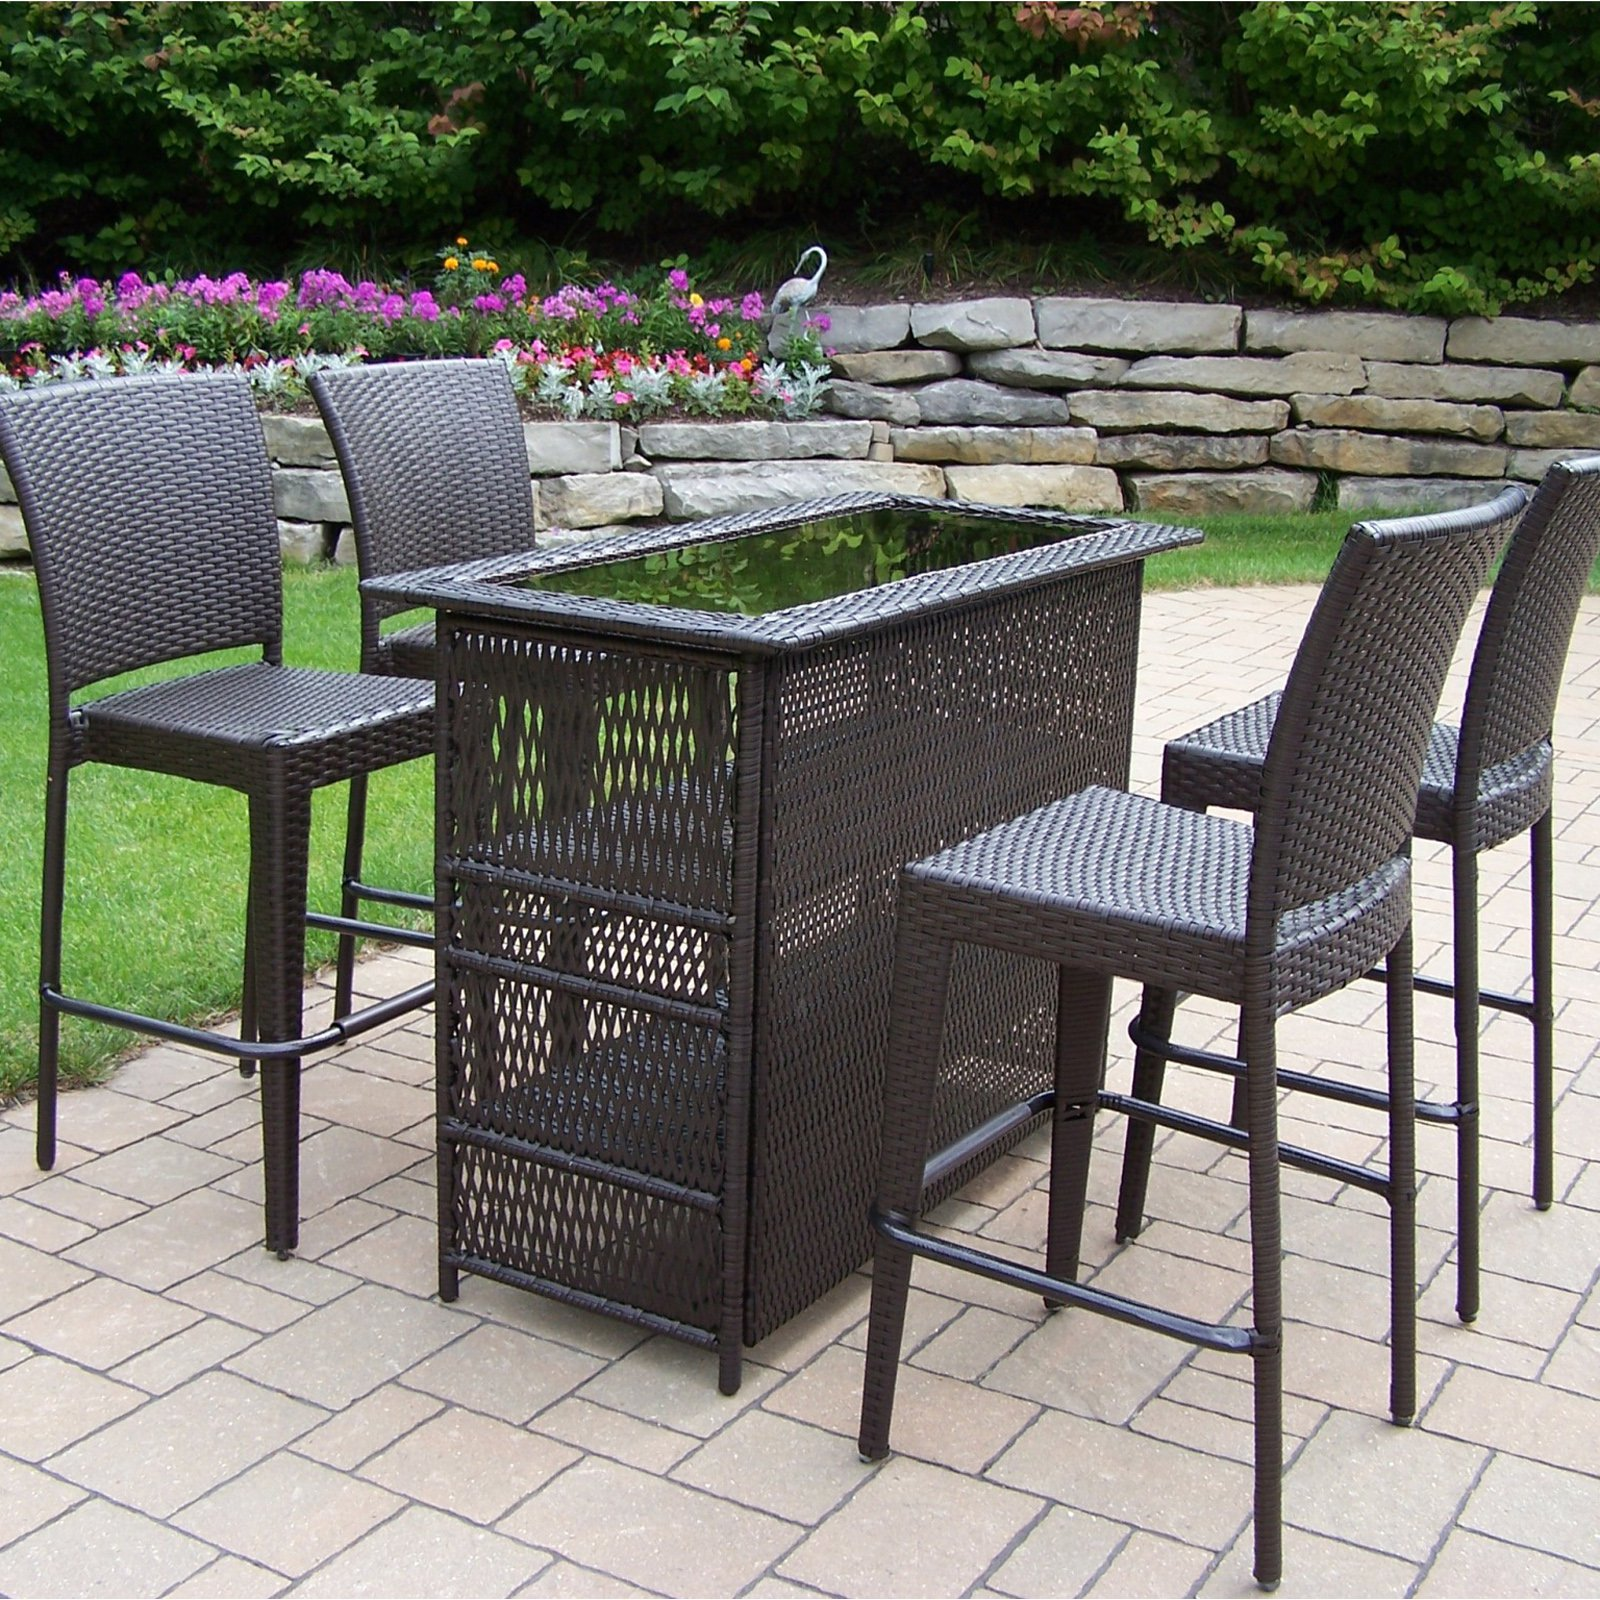 Delicieux Oakland Living All Weather Wicker Patio Bar Set